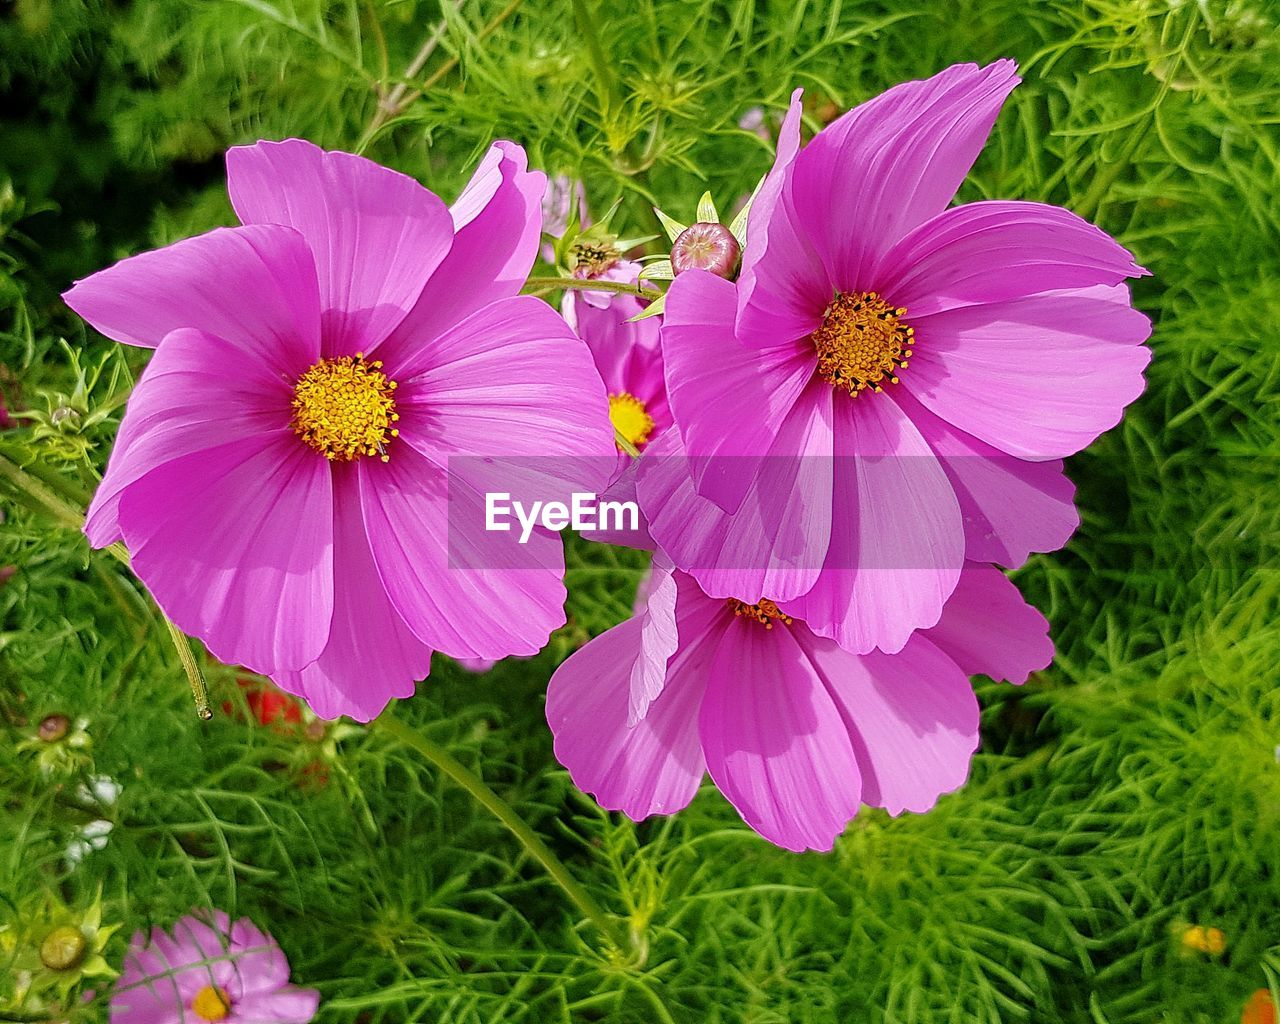 flowering plant, flower, plant, freshness, fragility, pink color, growth, petal, vulnerability, inflorescence, flower head, close-up, beauty in nature, nature, no people, day, focus on foreground, cosmos flower, pollen, grass, outdoors, purple